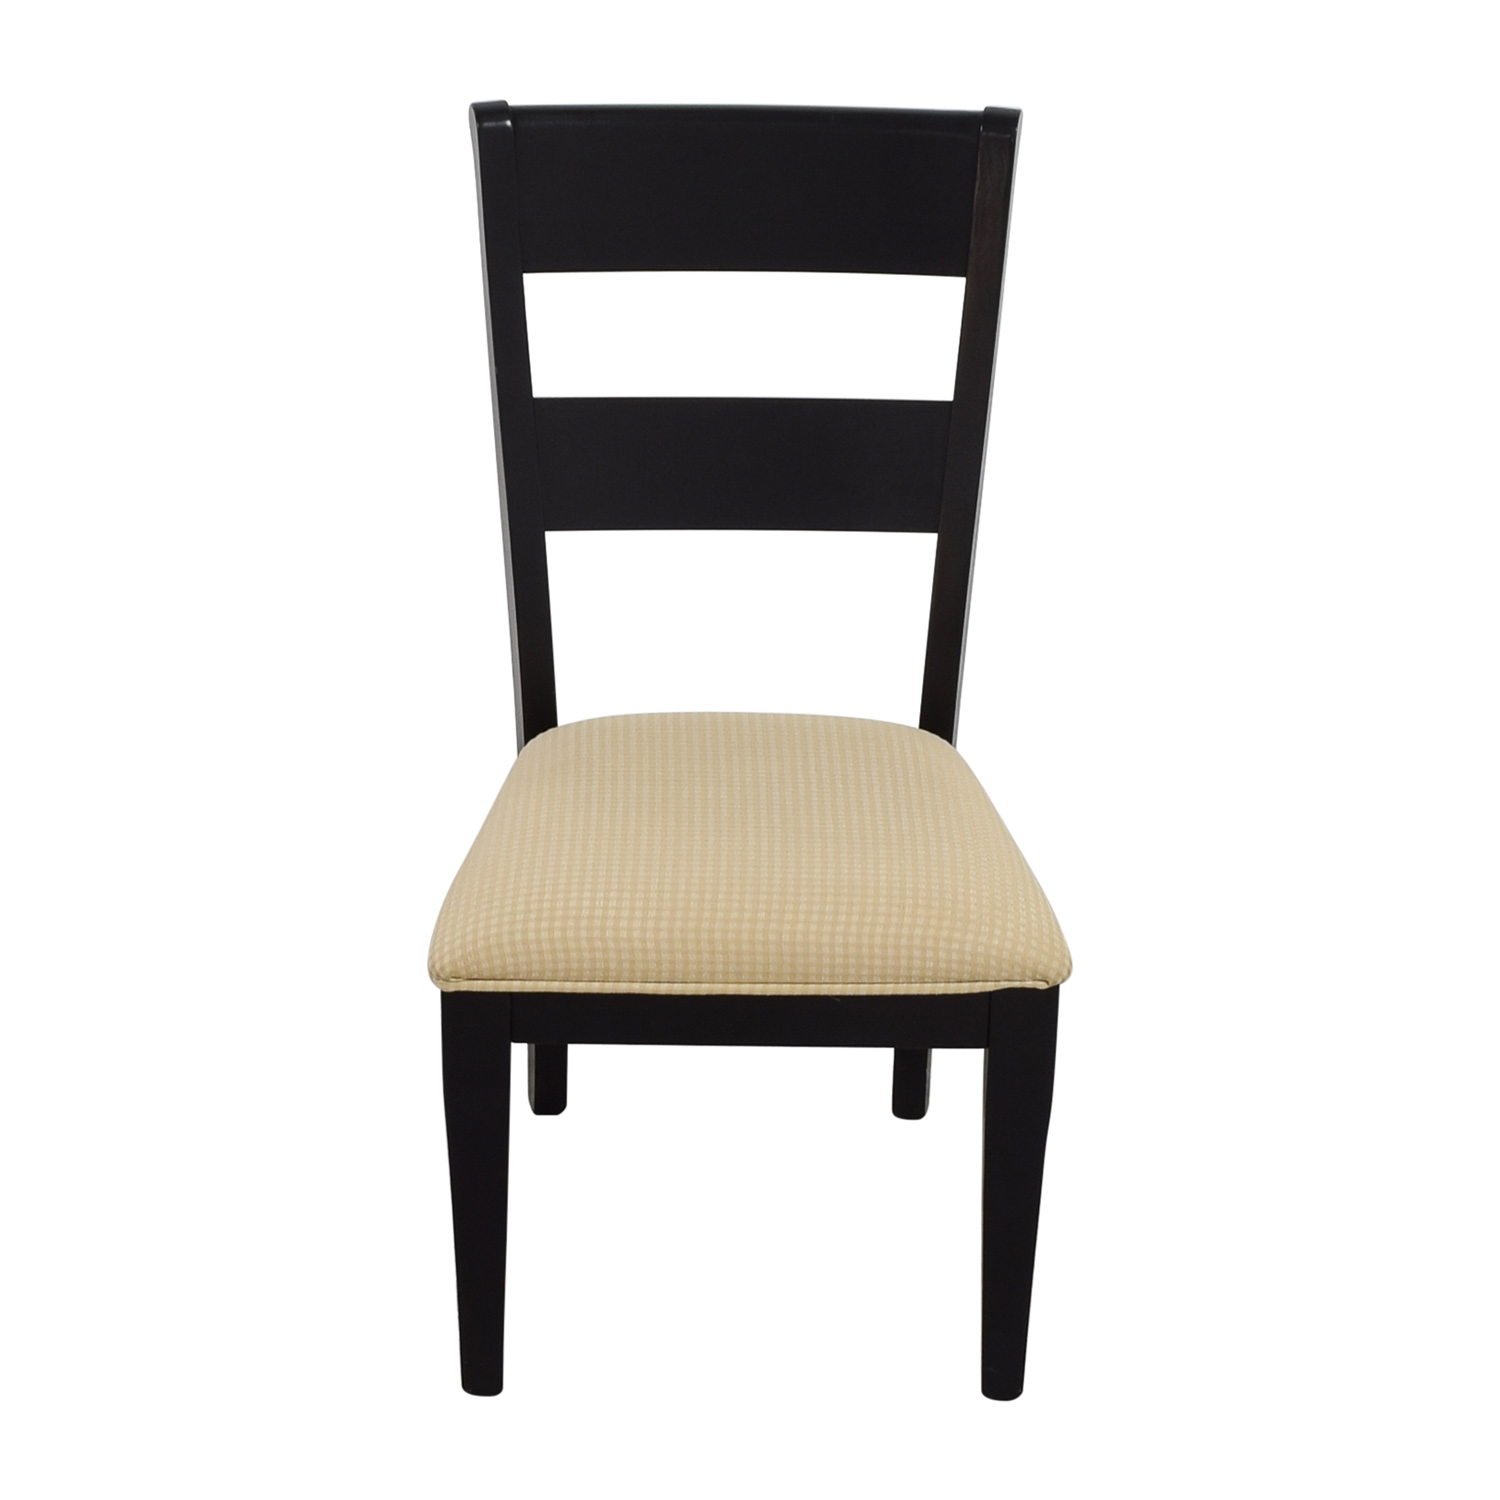 Raymour & Flanigan Raymour & Flanigan Black Chair with Beige Check Upholstery Chairs